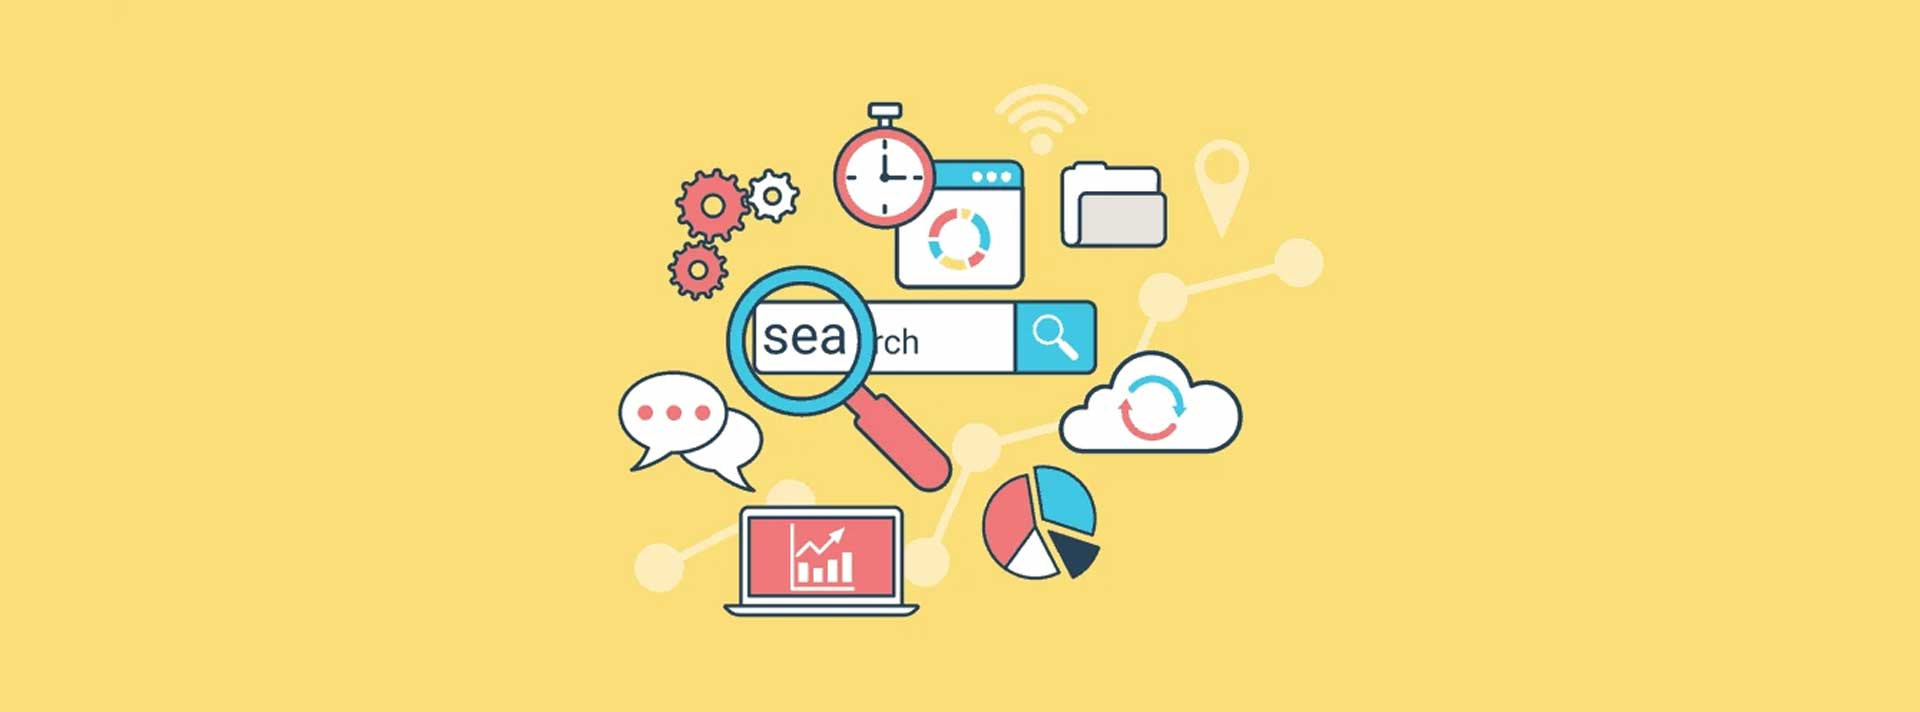 They Increase Your Search Traffic